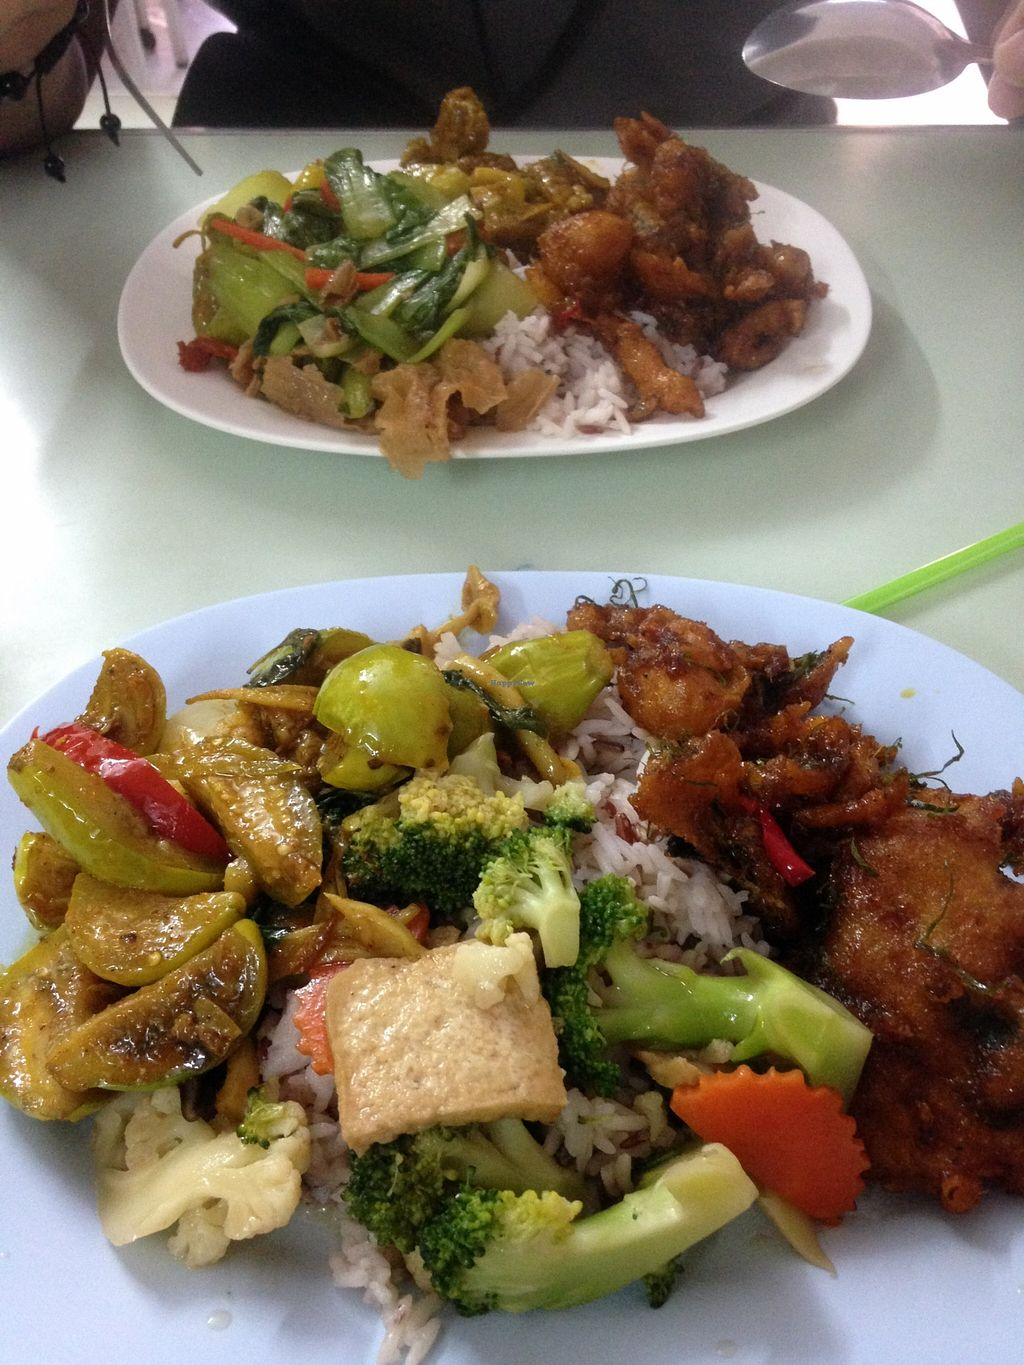 "Photo of Tien Sin - Si Wiang  by <a href=""/members/profile/lanise"">lanise</a> <br/>Amazing food. We spent lunch wondering how to reconstruct these dishes at home <br/> April 28, 2016  - <a href='/contact/abuse/image/22664/146502'>Report</a>"